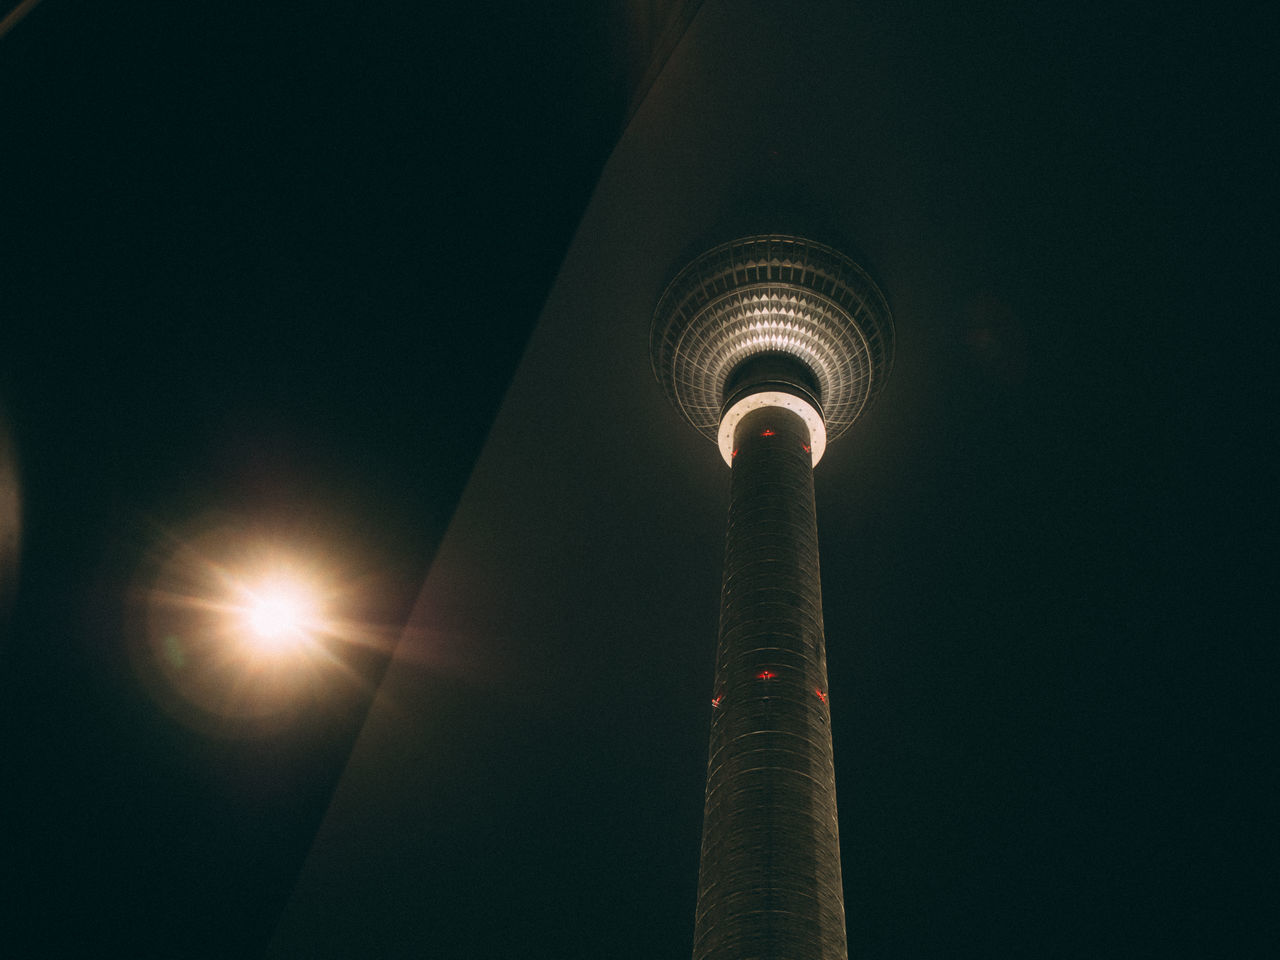 Architecture Berlin Building Exterior Built Structure City Fernsehturm Illuminated Low Angle View Night No People Sky Tower